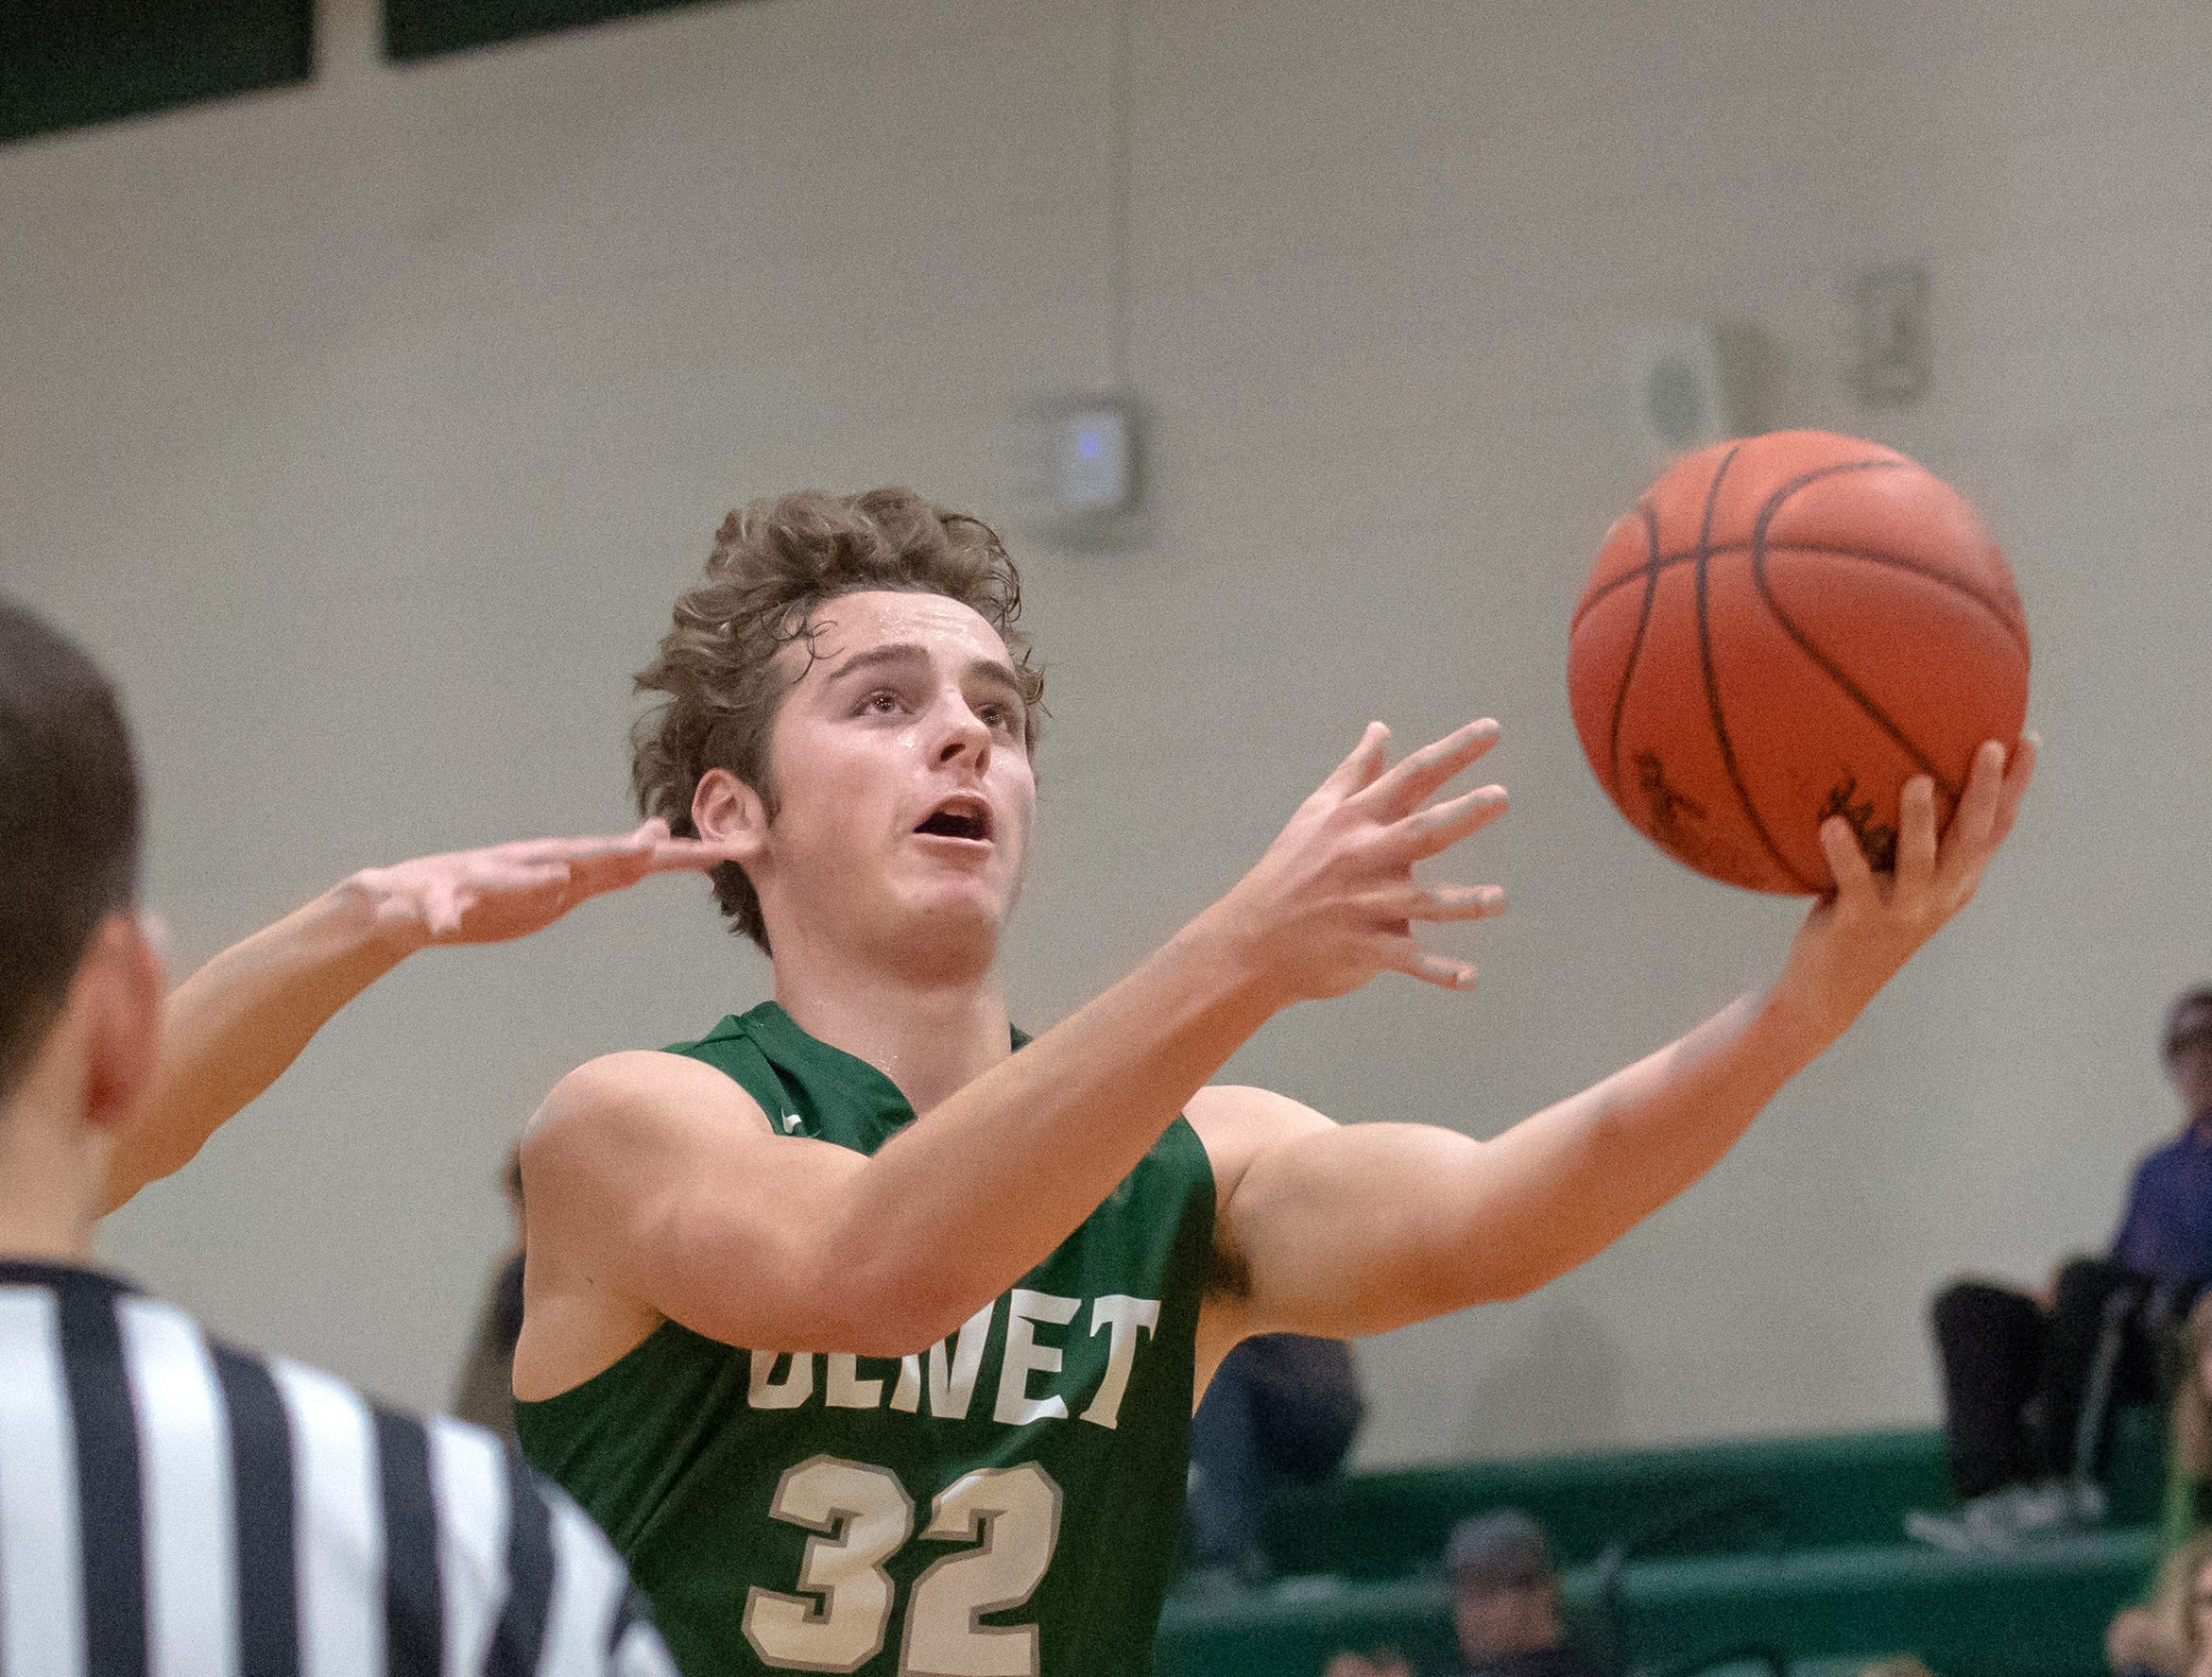 Olivet's Sam Heston (32) tries for two points during game action Tuesday night at Pennfield.